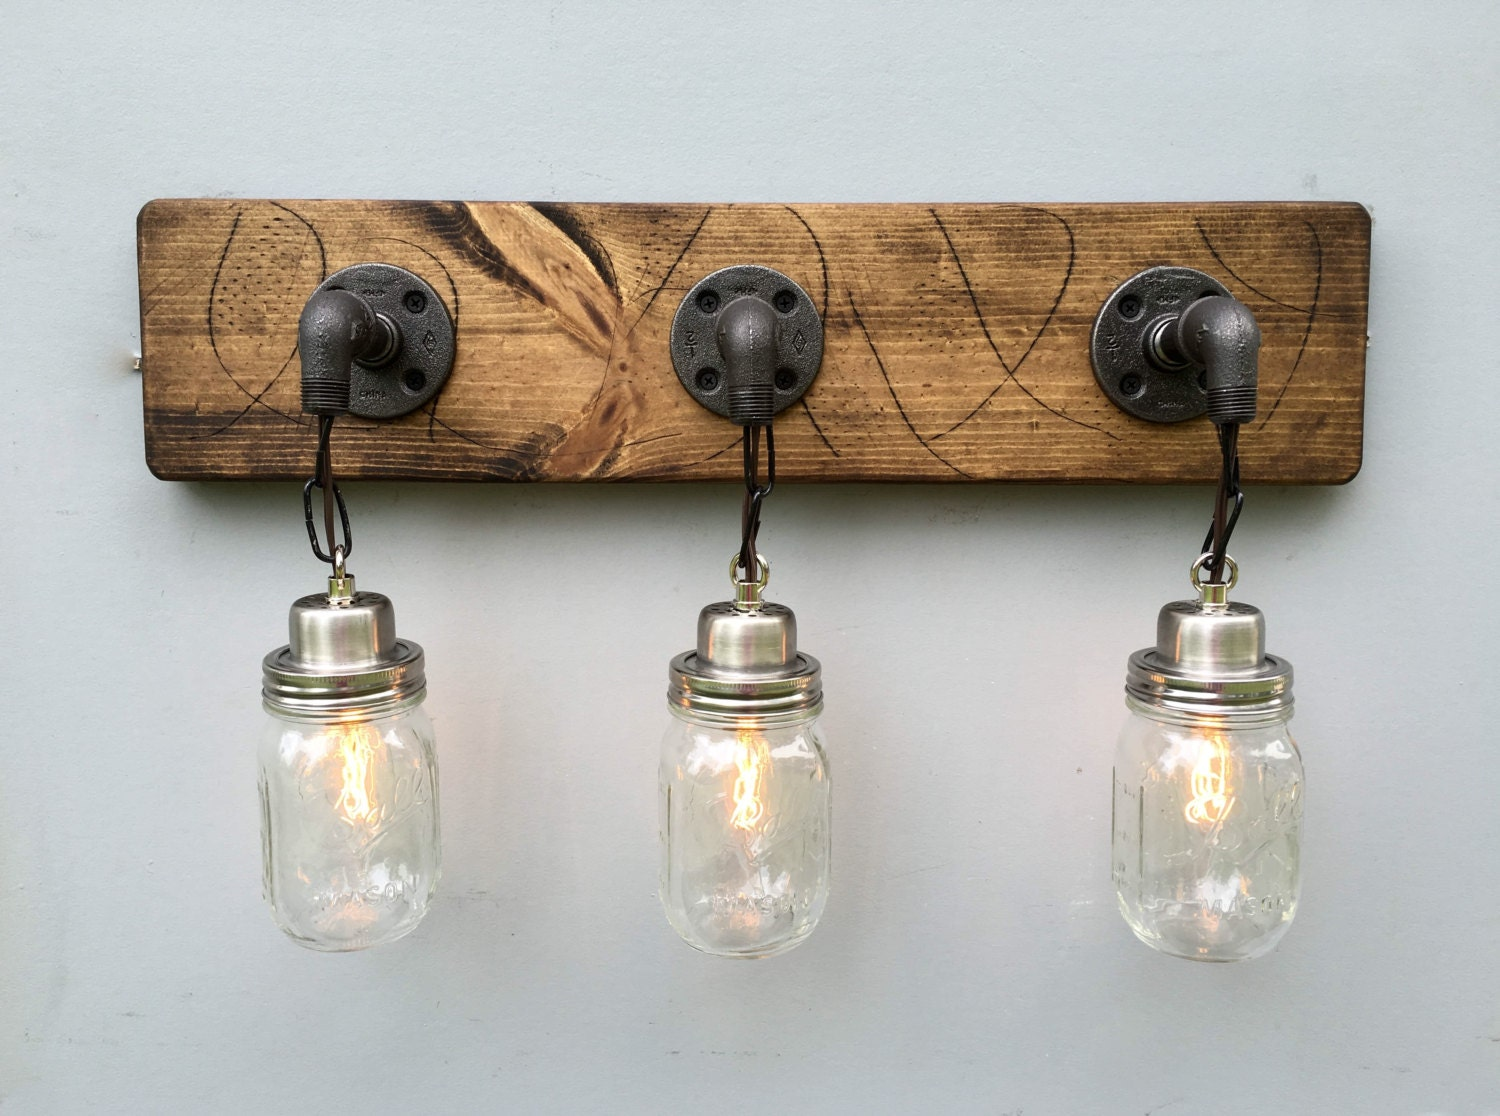 Vanity Light Fixture 3 Country-Style Mason Jar Light by Lightrooom